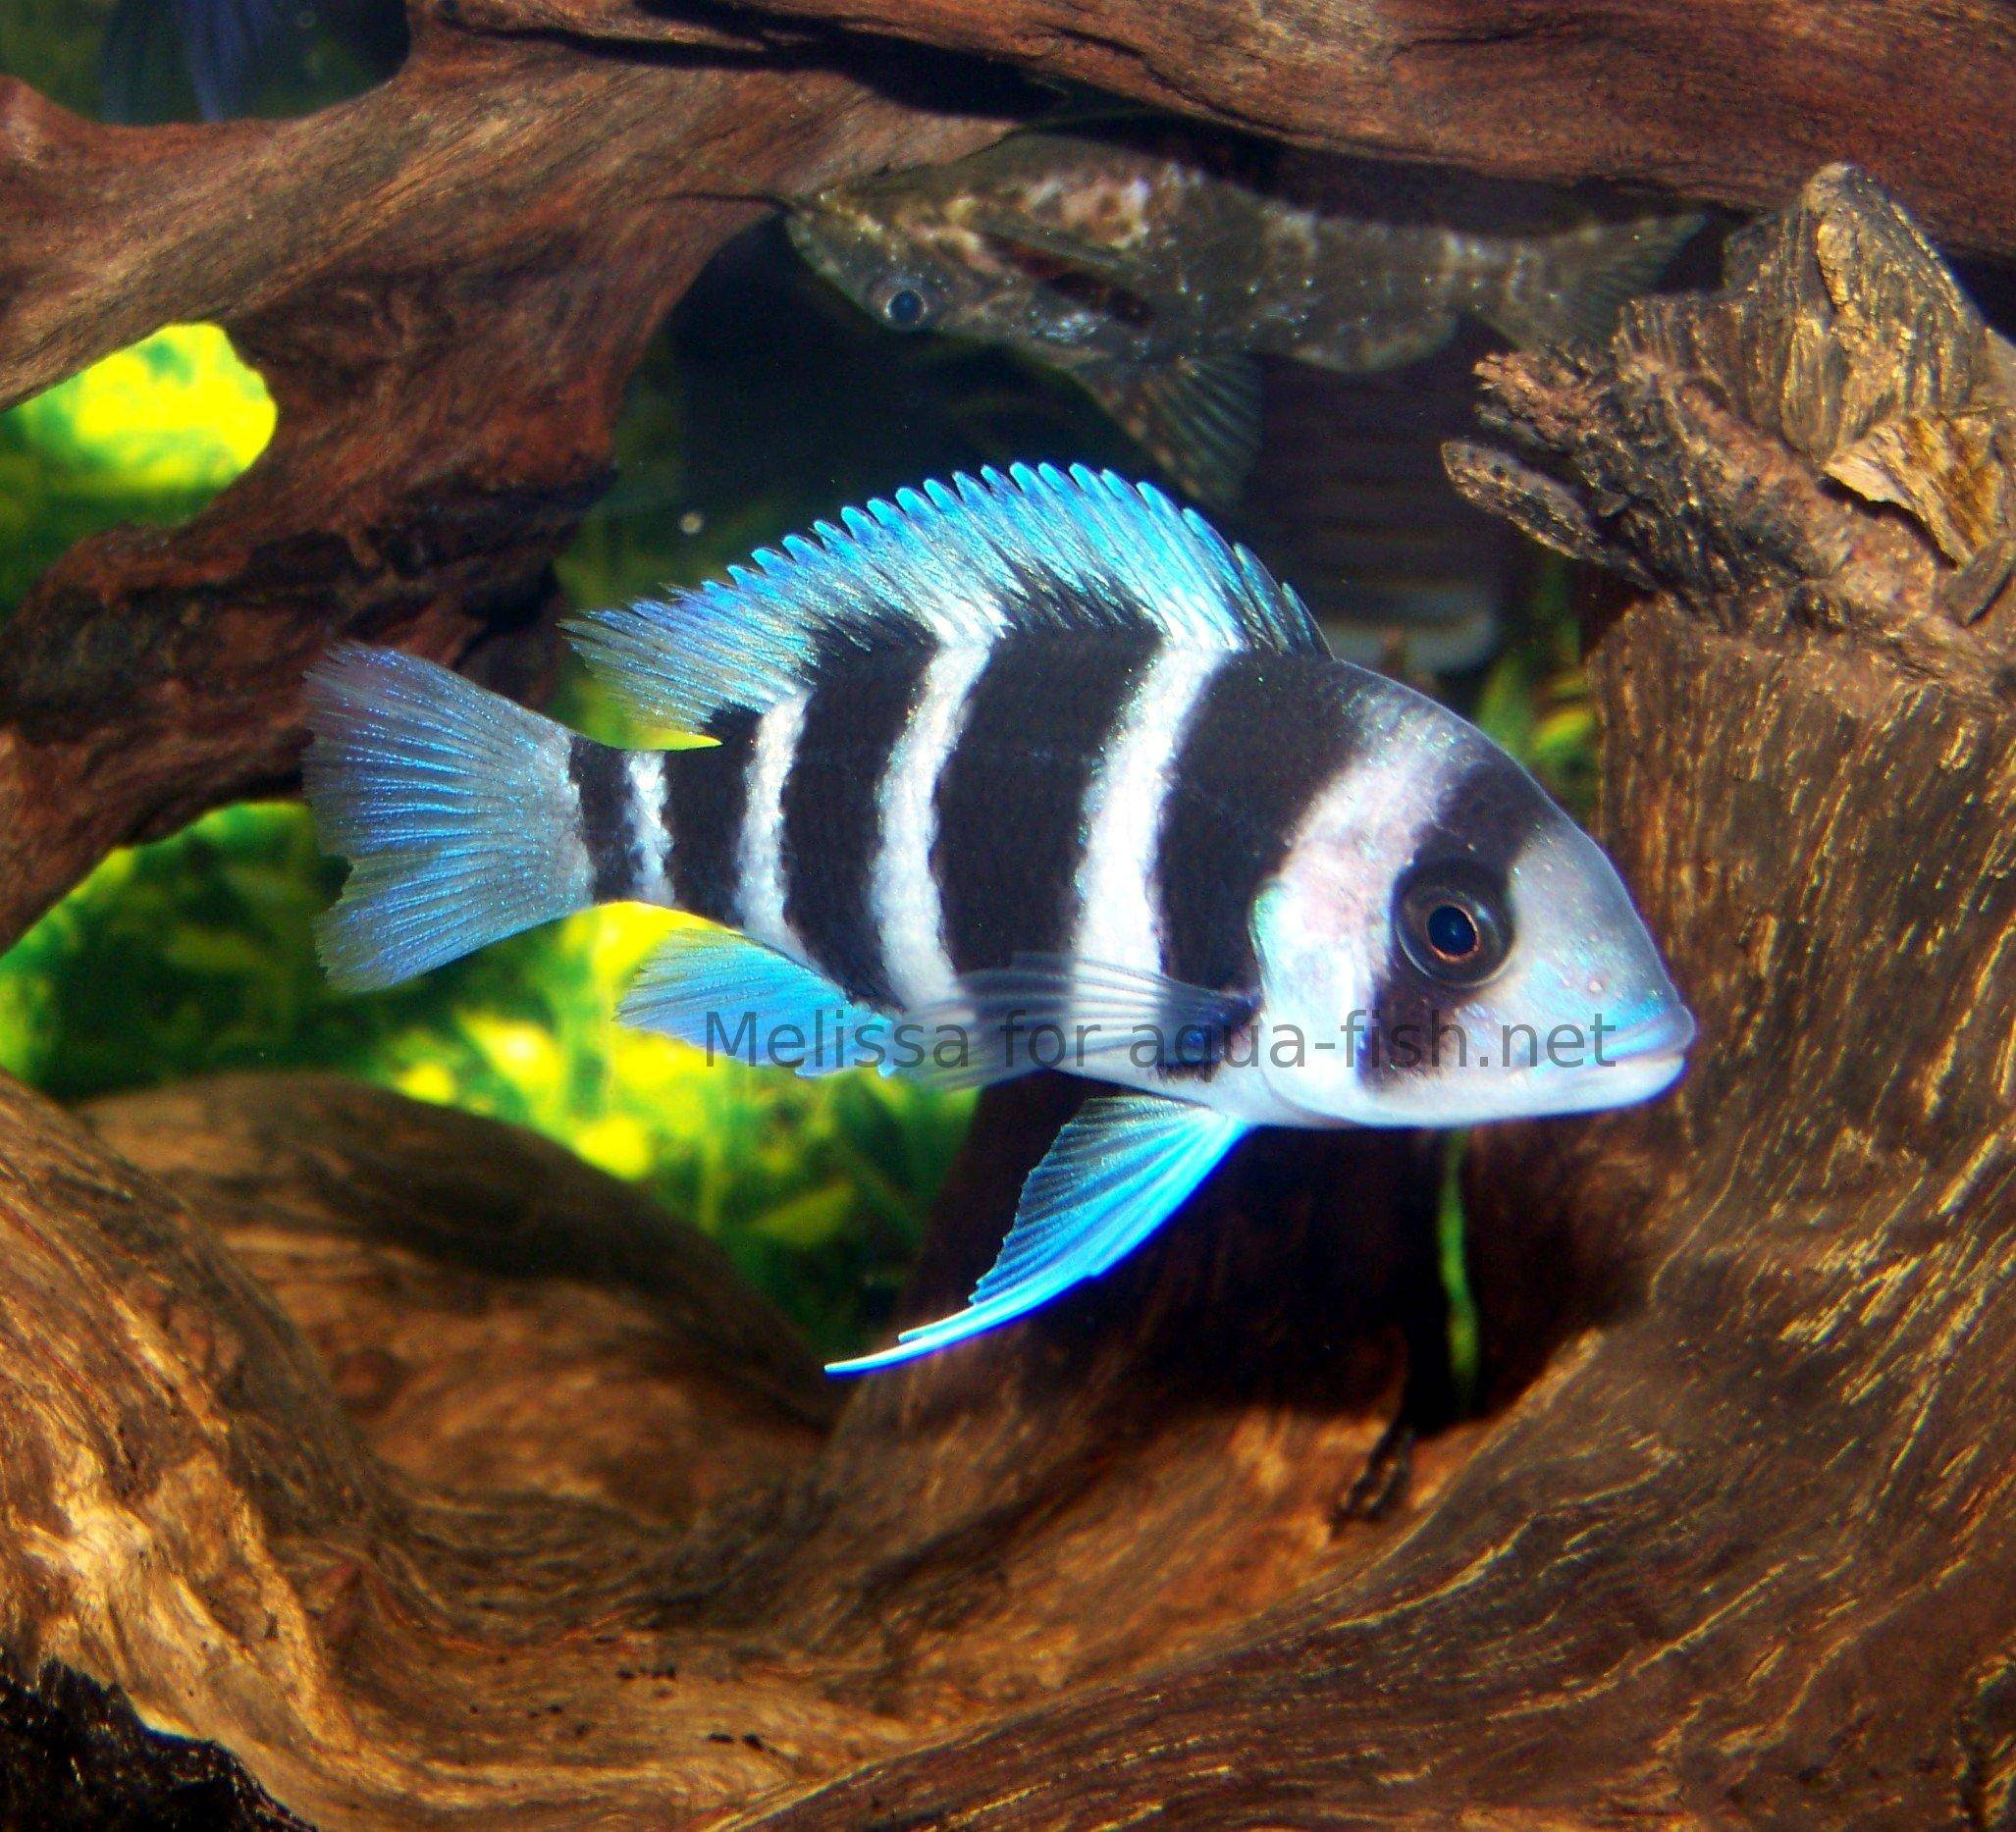 An Article Devoted To Keepers Of Frontosa Cichlids With Pictures And